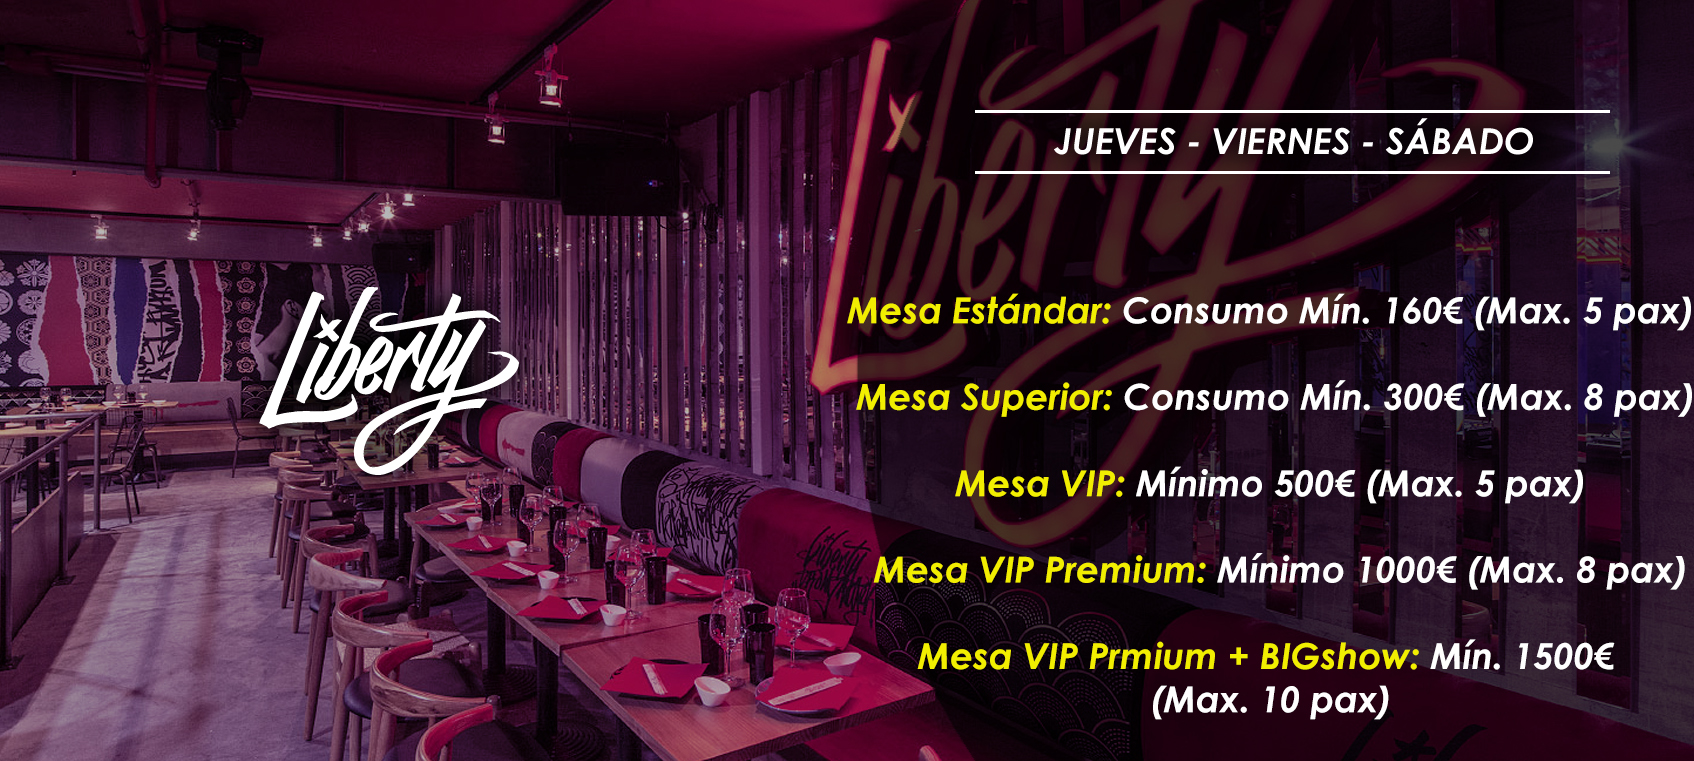 precio mesas vip discoteca teatro liberty supper club